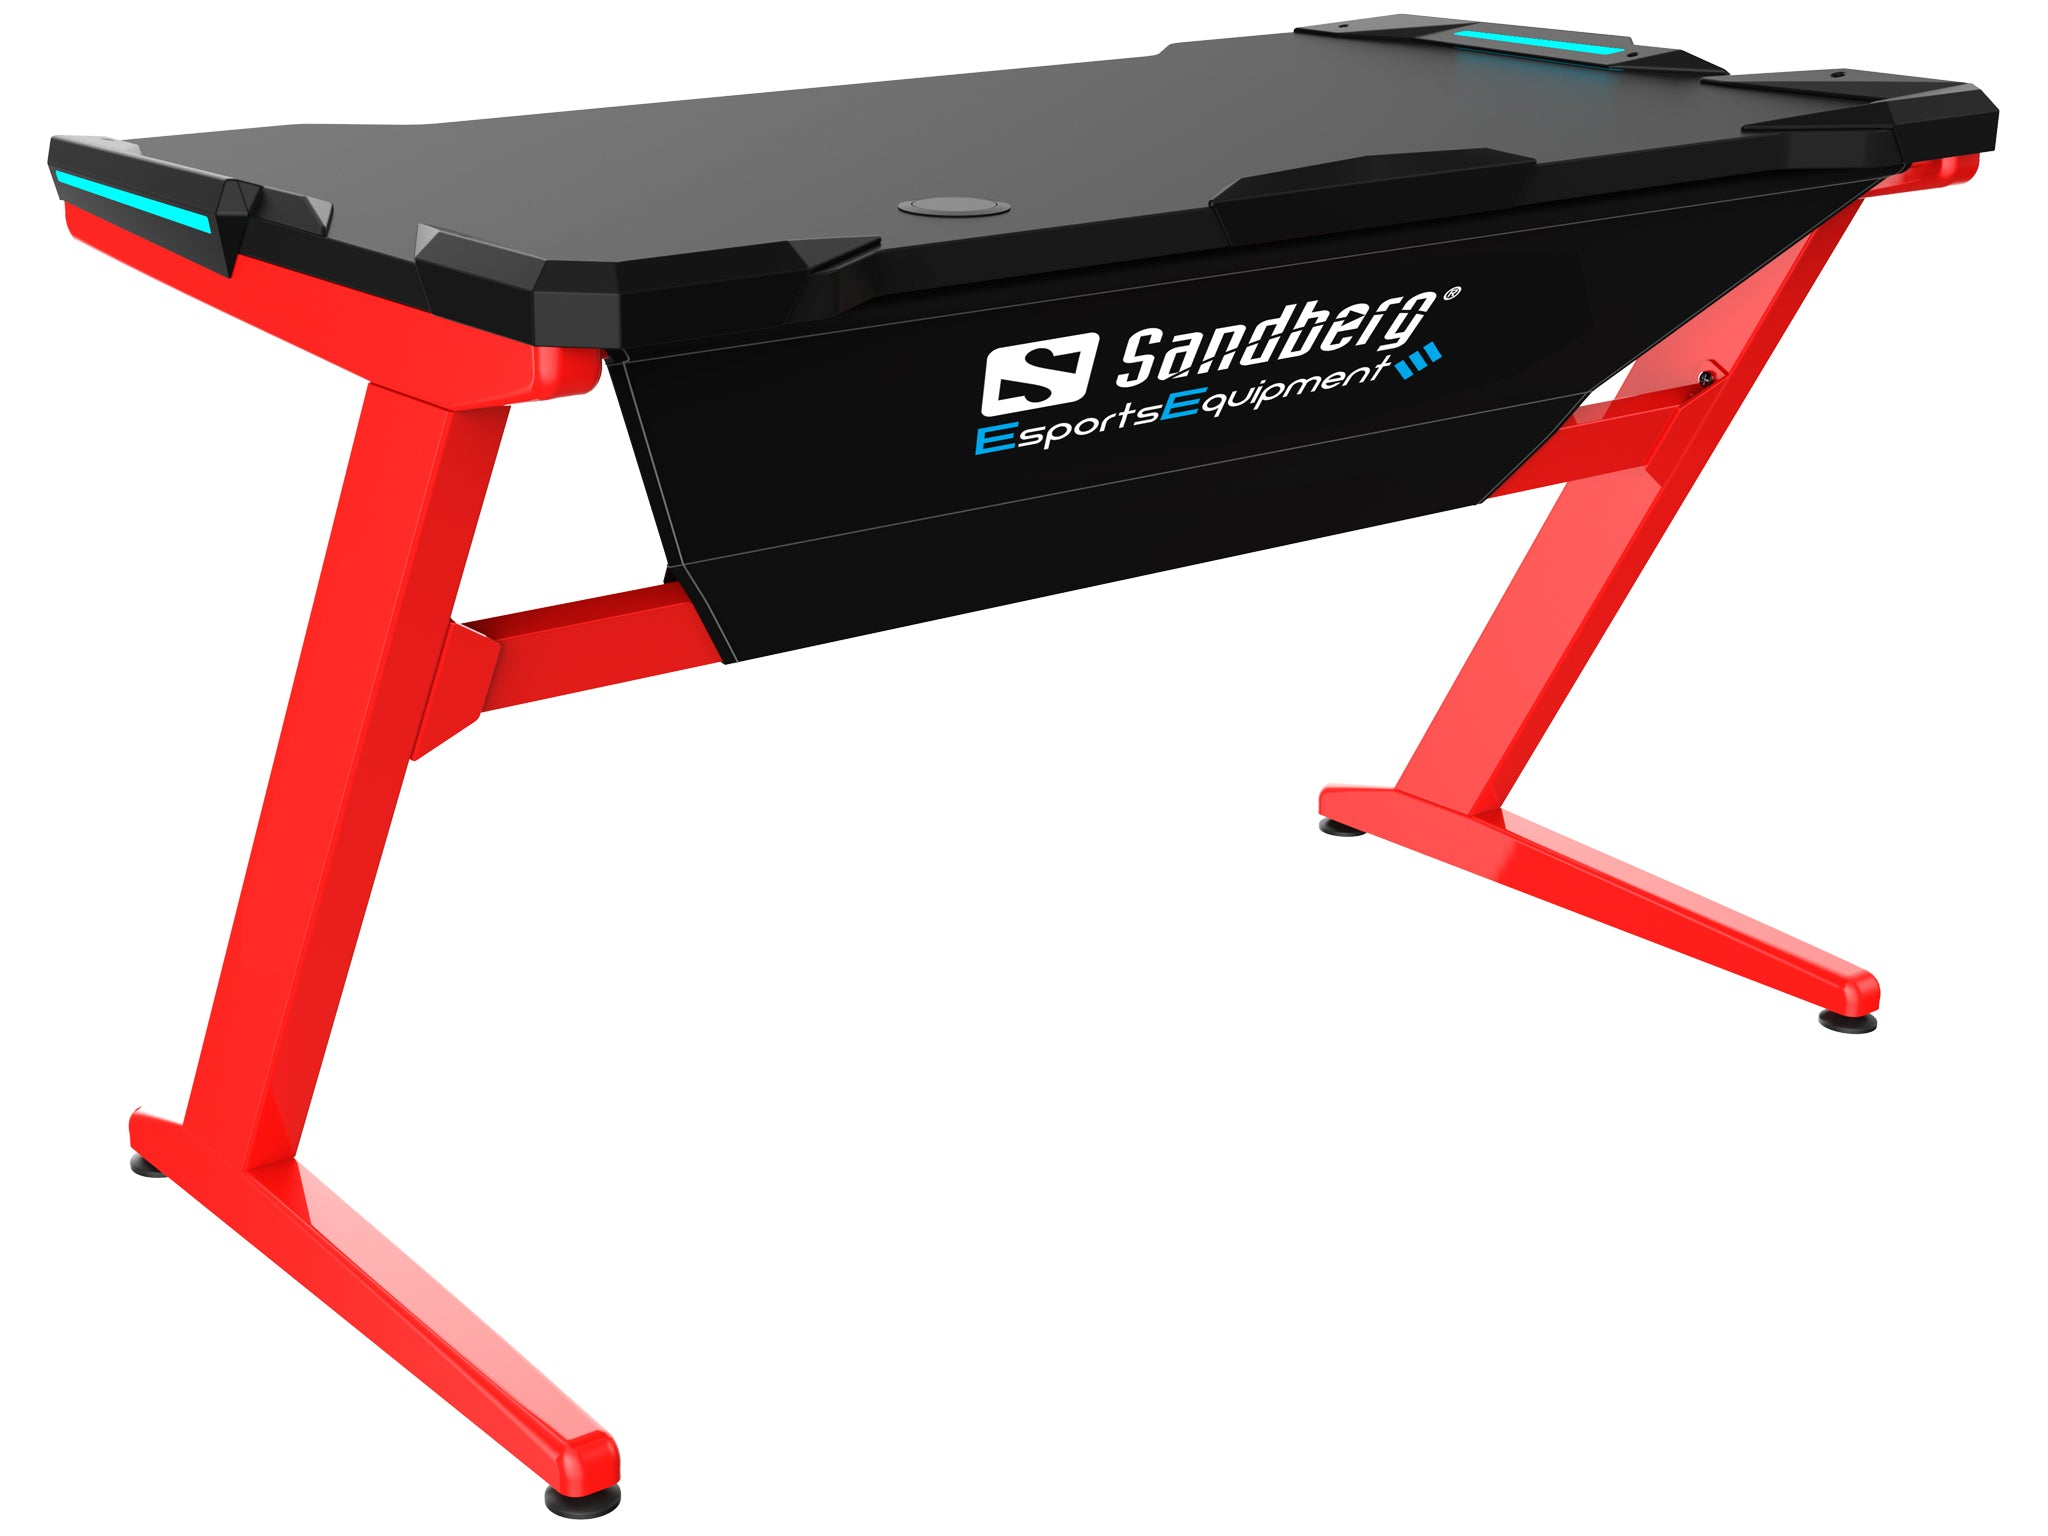 Sandberg Fighter Gaming Desk, Red